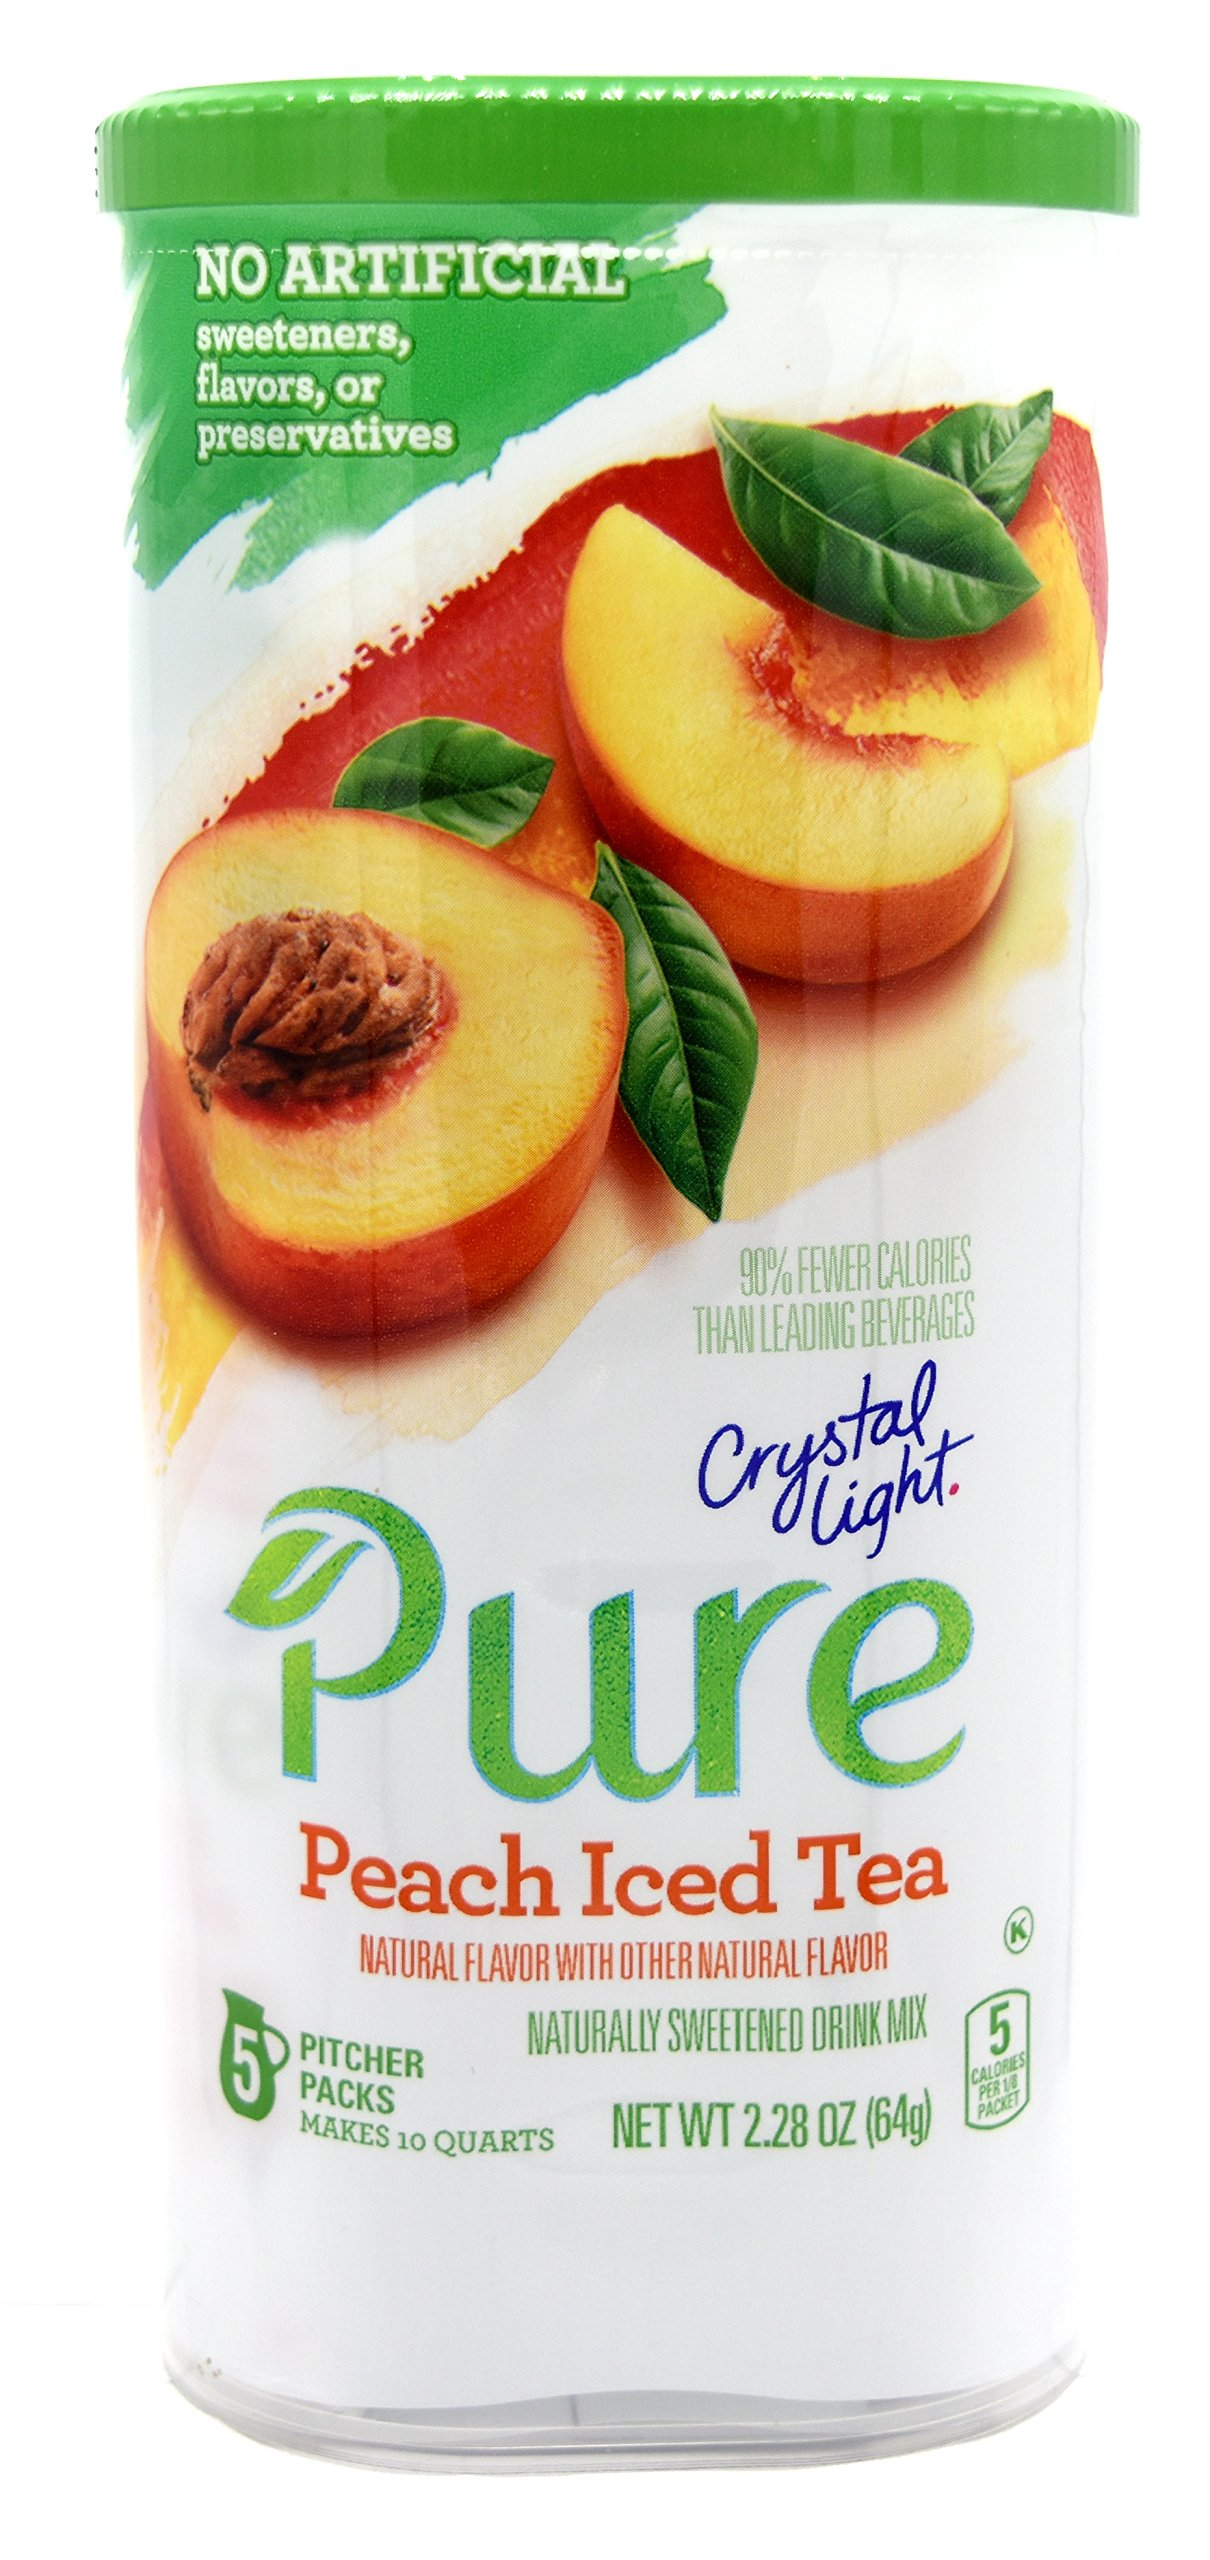 Crystal Light Pure Peach Iced Tea Drink Mix, 10-Quart Canister (10 Canister Pack)